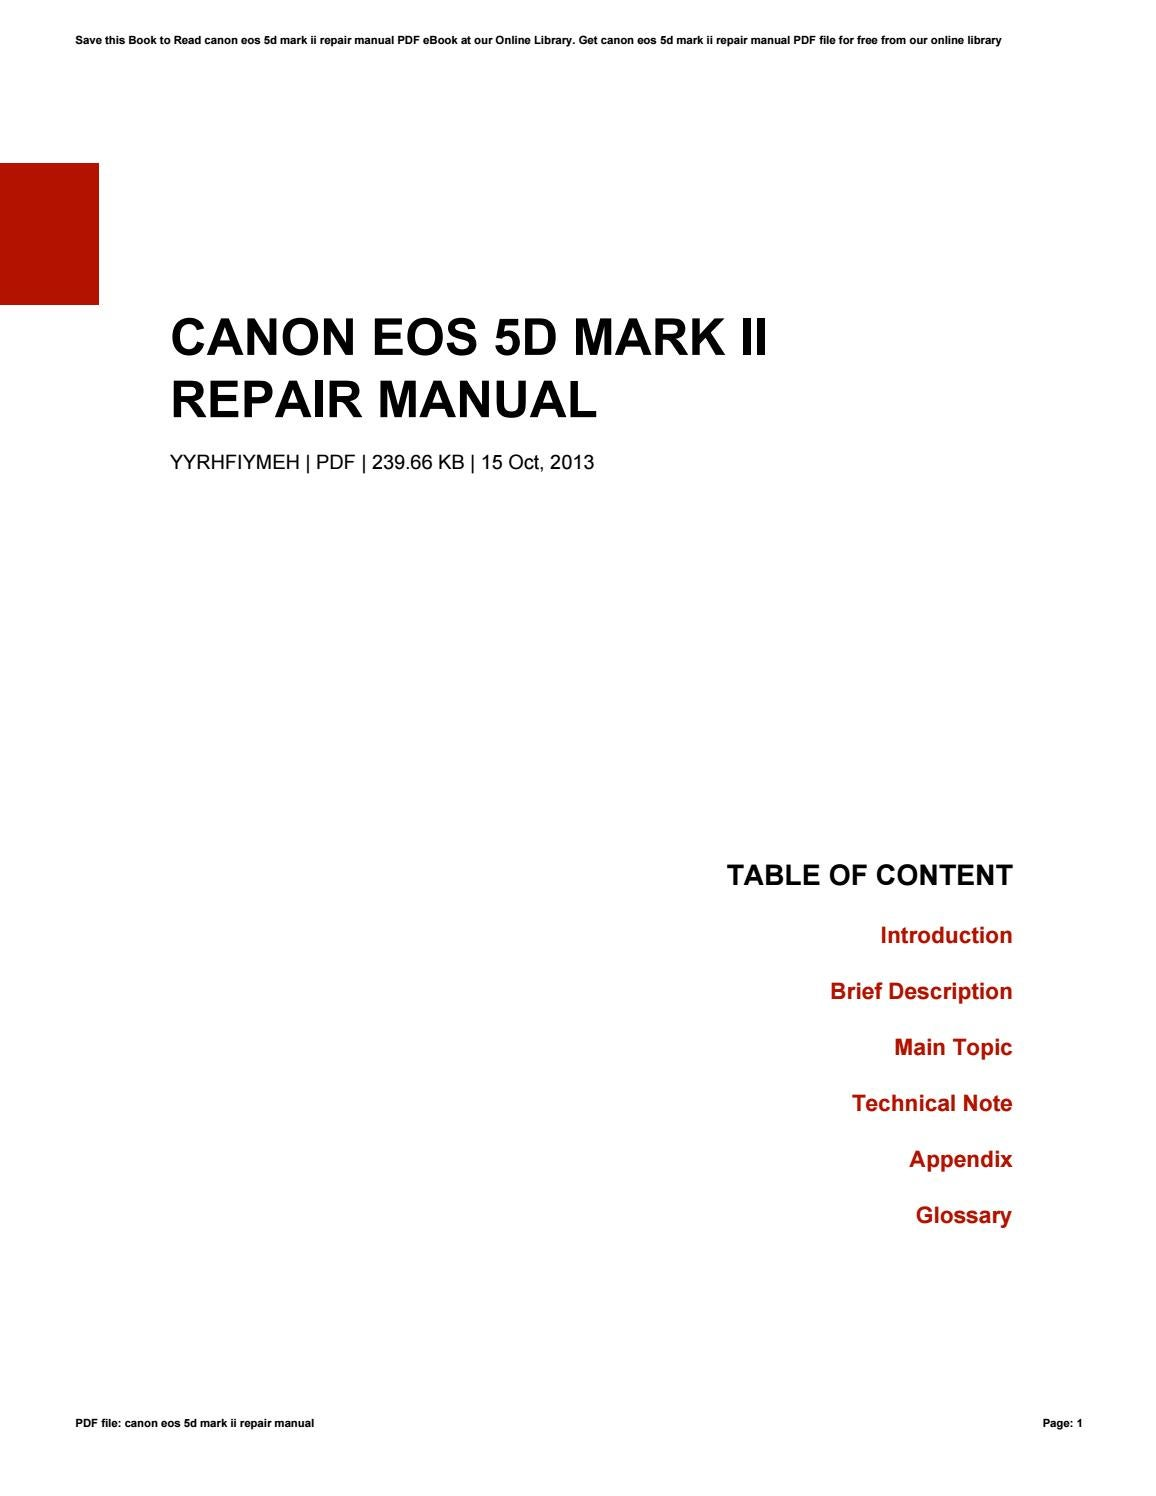 Canon eos 5d mark ii repair manual by MichelleMarquis1660